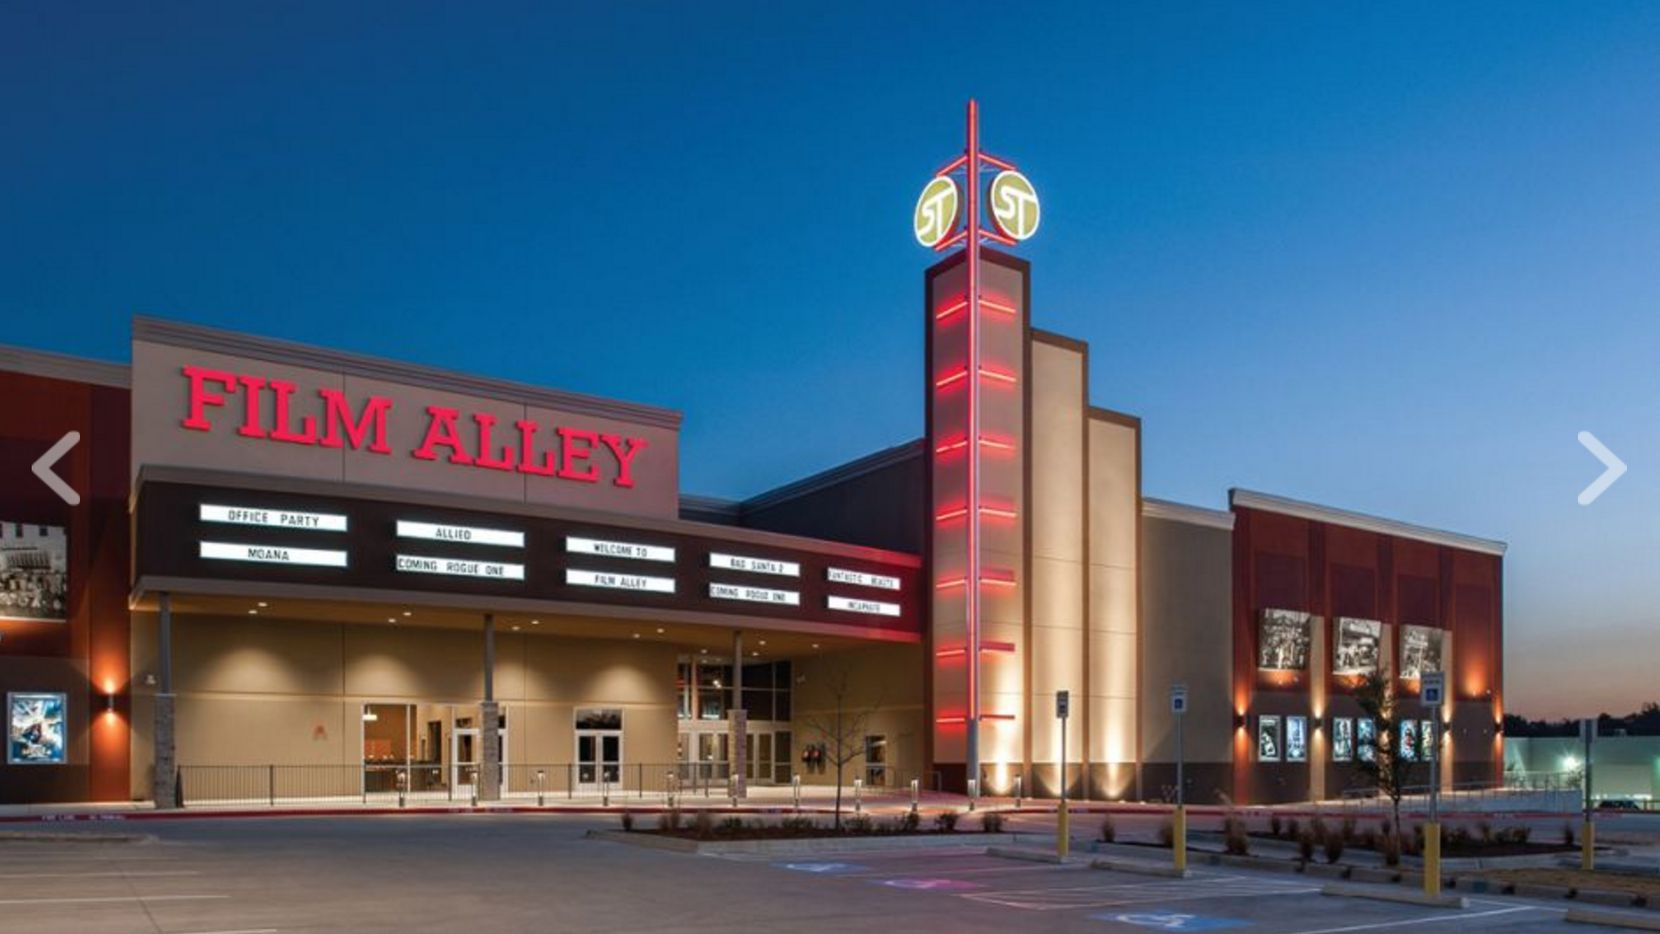 What's coming to Terrell? Film Alley promises dine-in movies